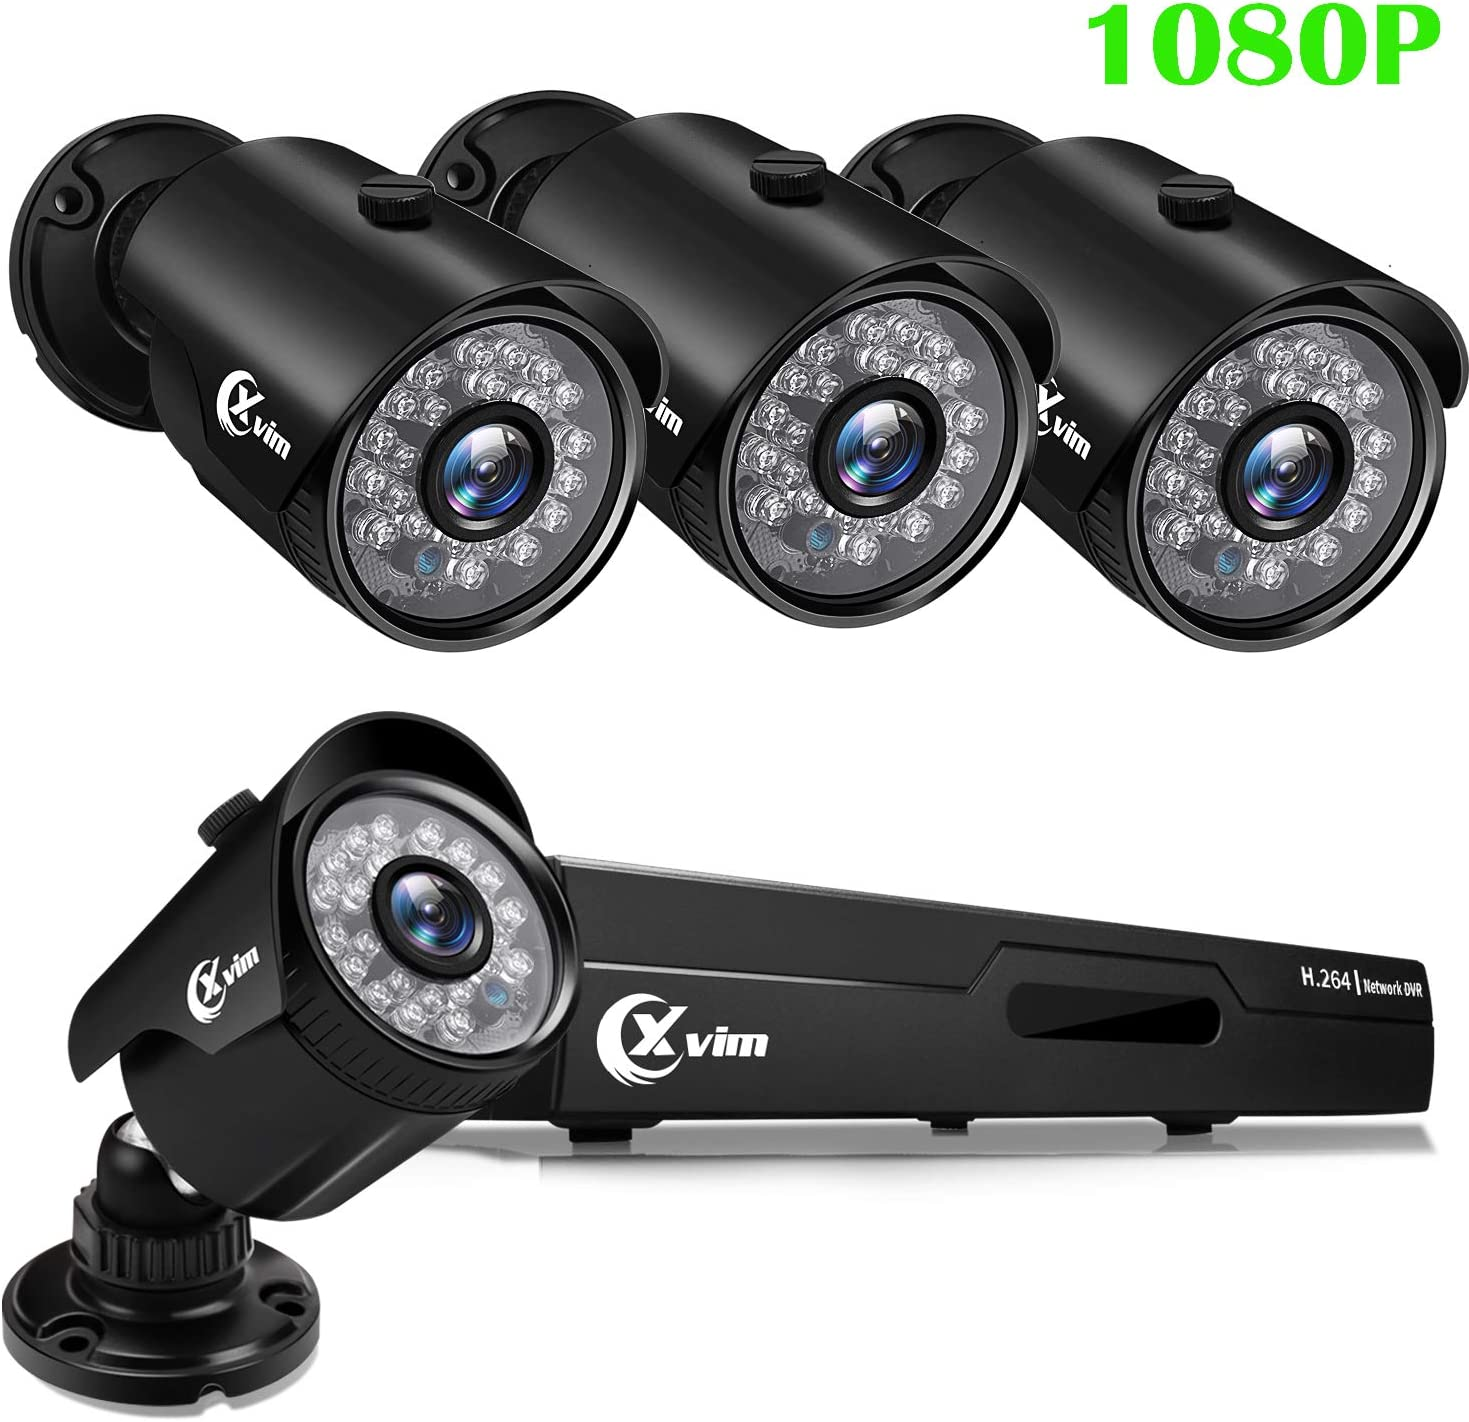 XVIM 1080P Home Security Camera System 4CH CCTV DVR Recorder 4pcs Full HD 1080P 1920TVL Indoor Outdoor Waterproof Surveillance Cameras Night Vision, Motion Alert, Easy Remote Access No Hard Drive